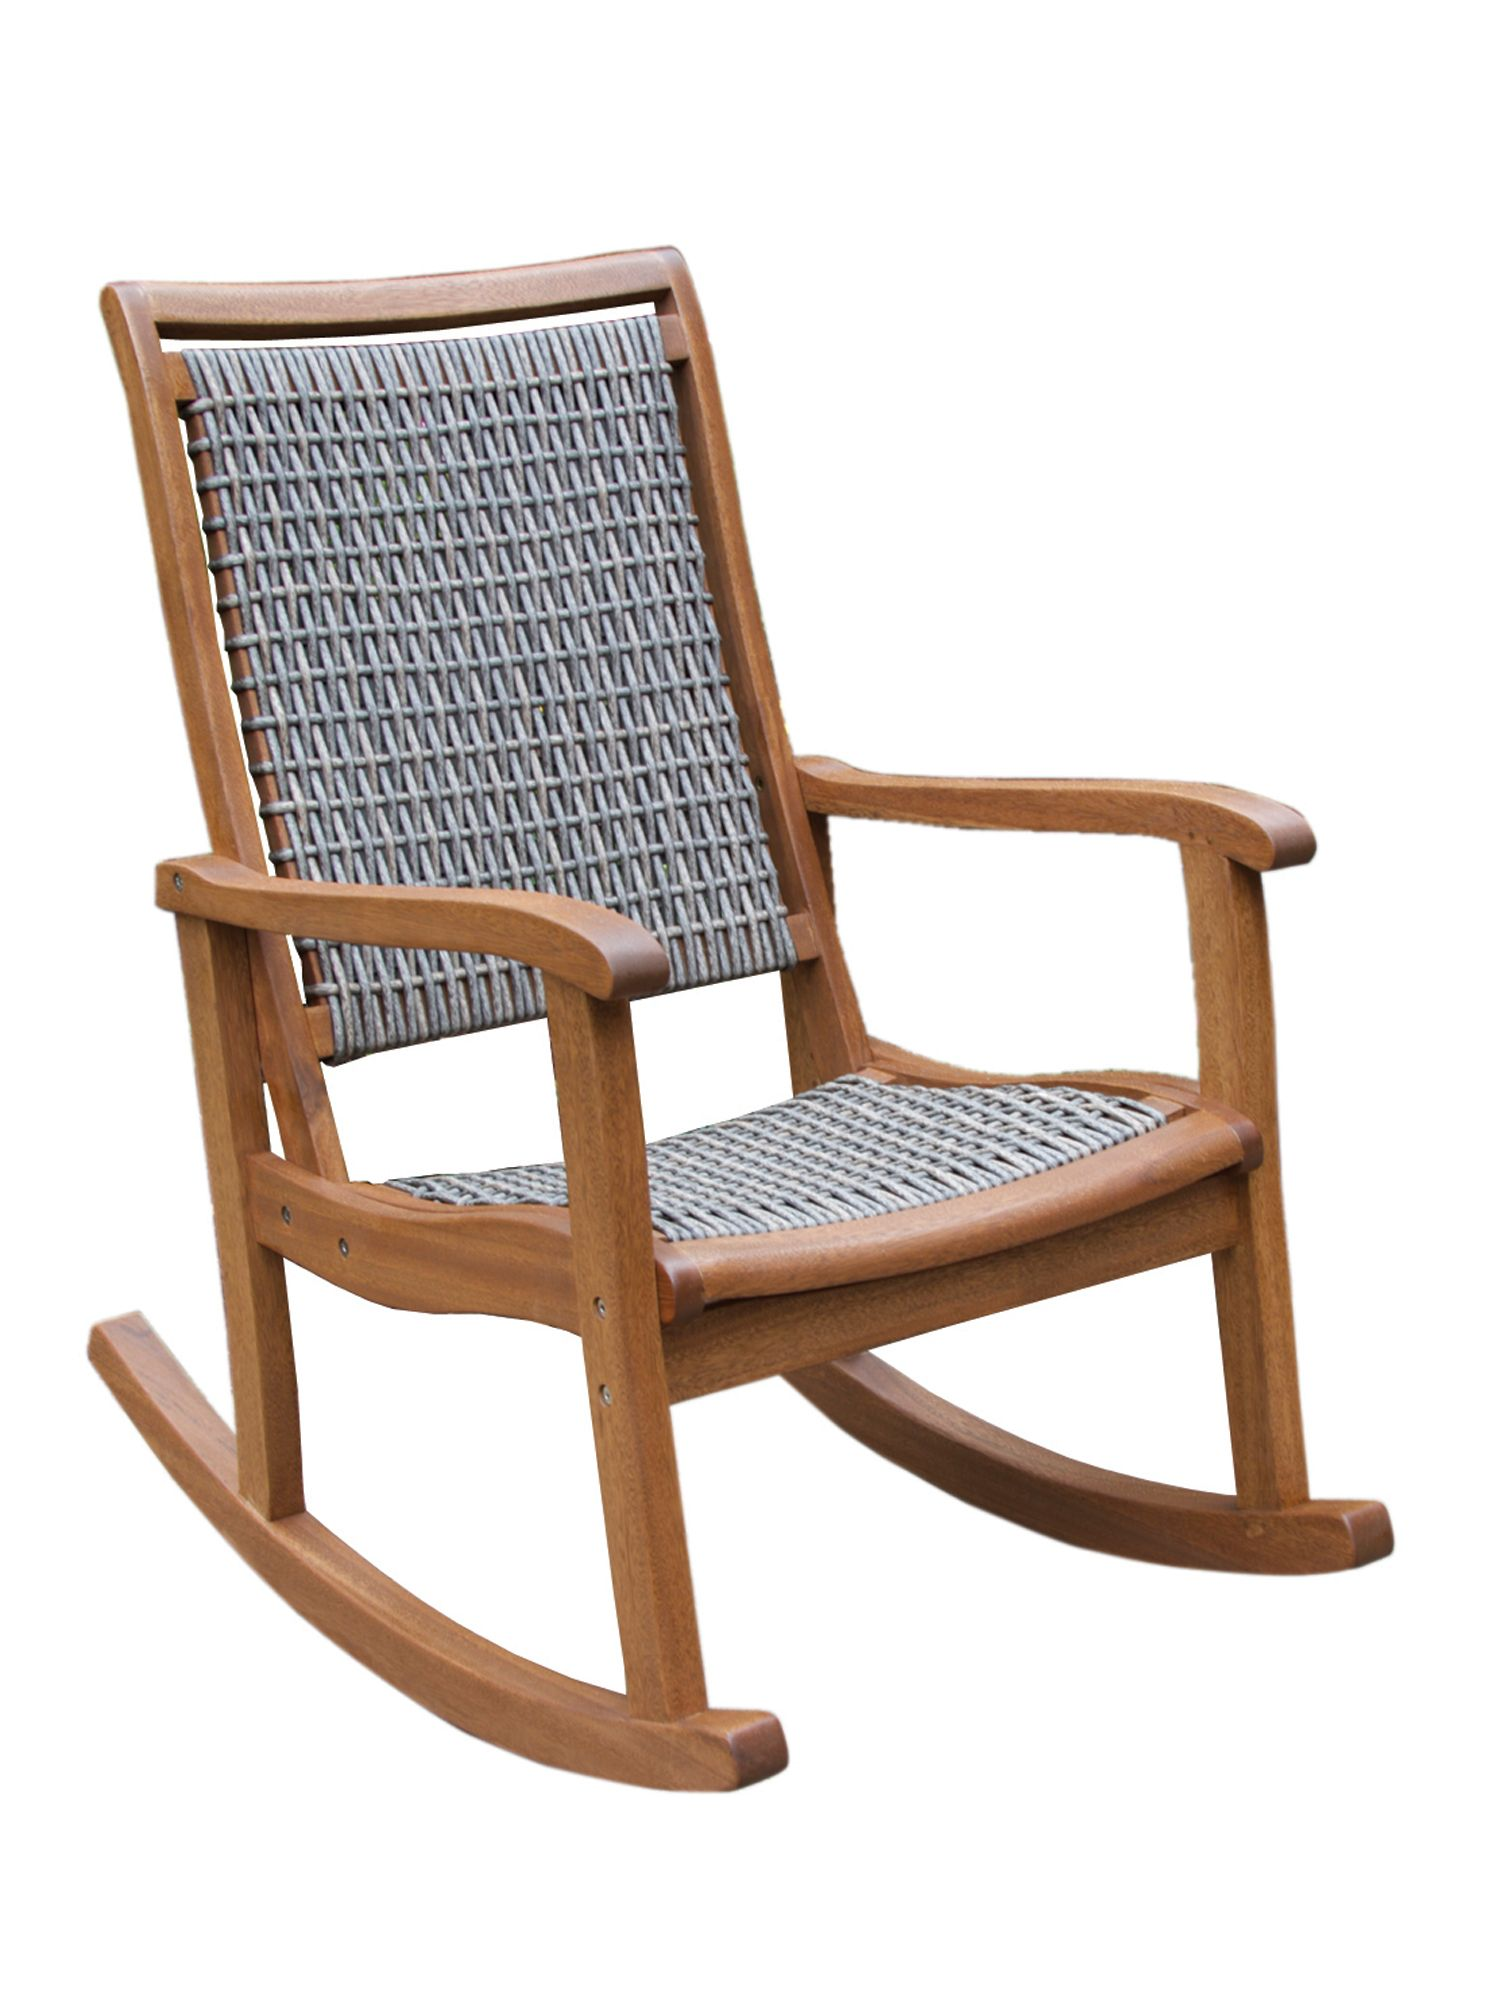 Prime Resin Wicker Eucalyptus Rocking Chair For The Home Cjindustries Chair Design For Home Cjindustriesco